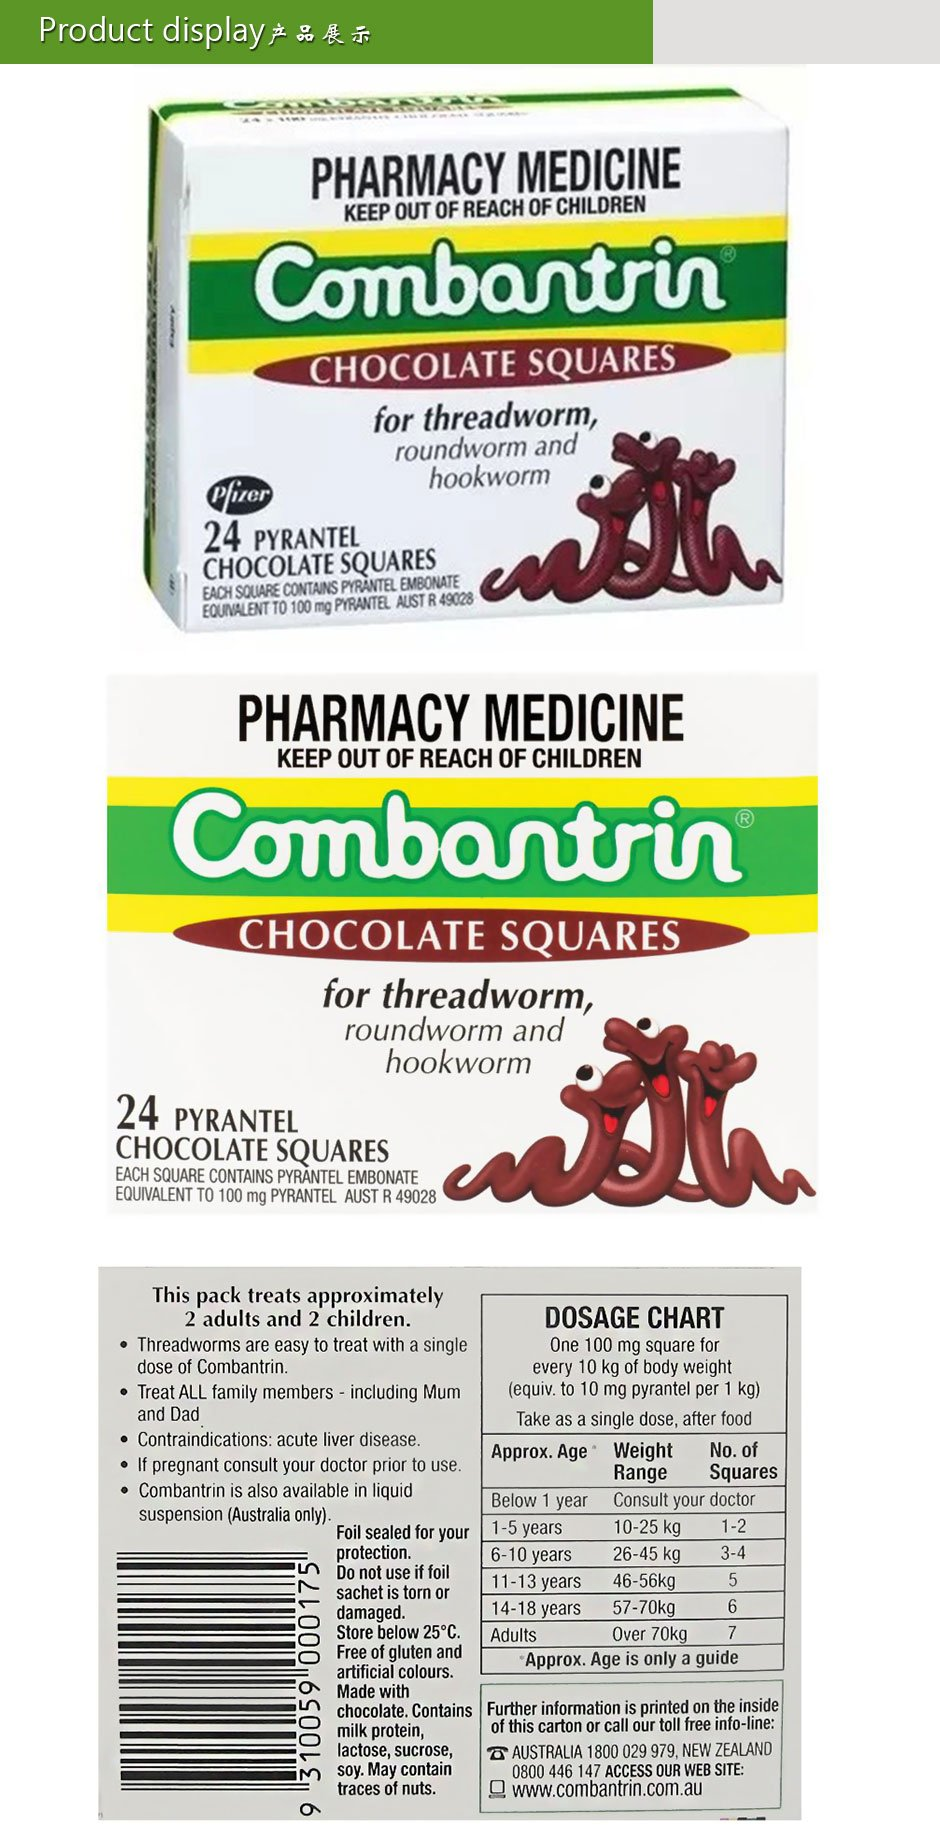 Combantrin Chocolate Squares 24 Worming Treatment for Children, Adult with 1PCS Chinese Knot Gift Made in Australia